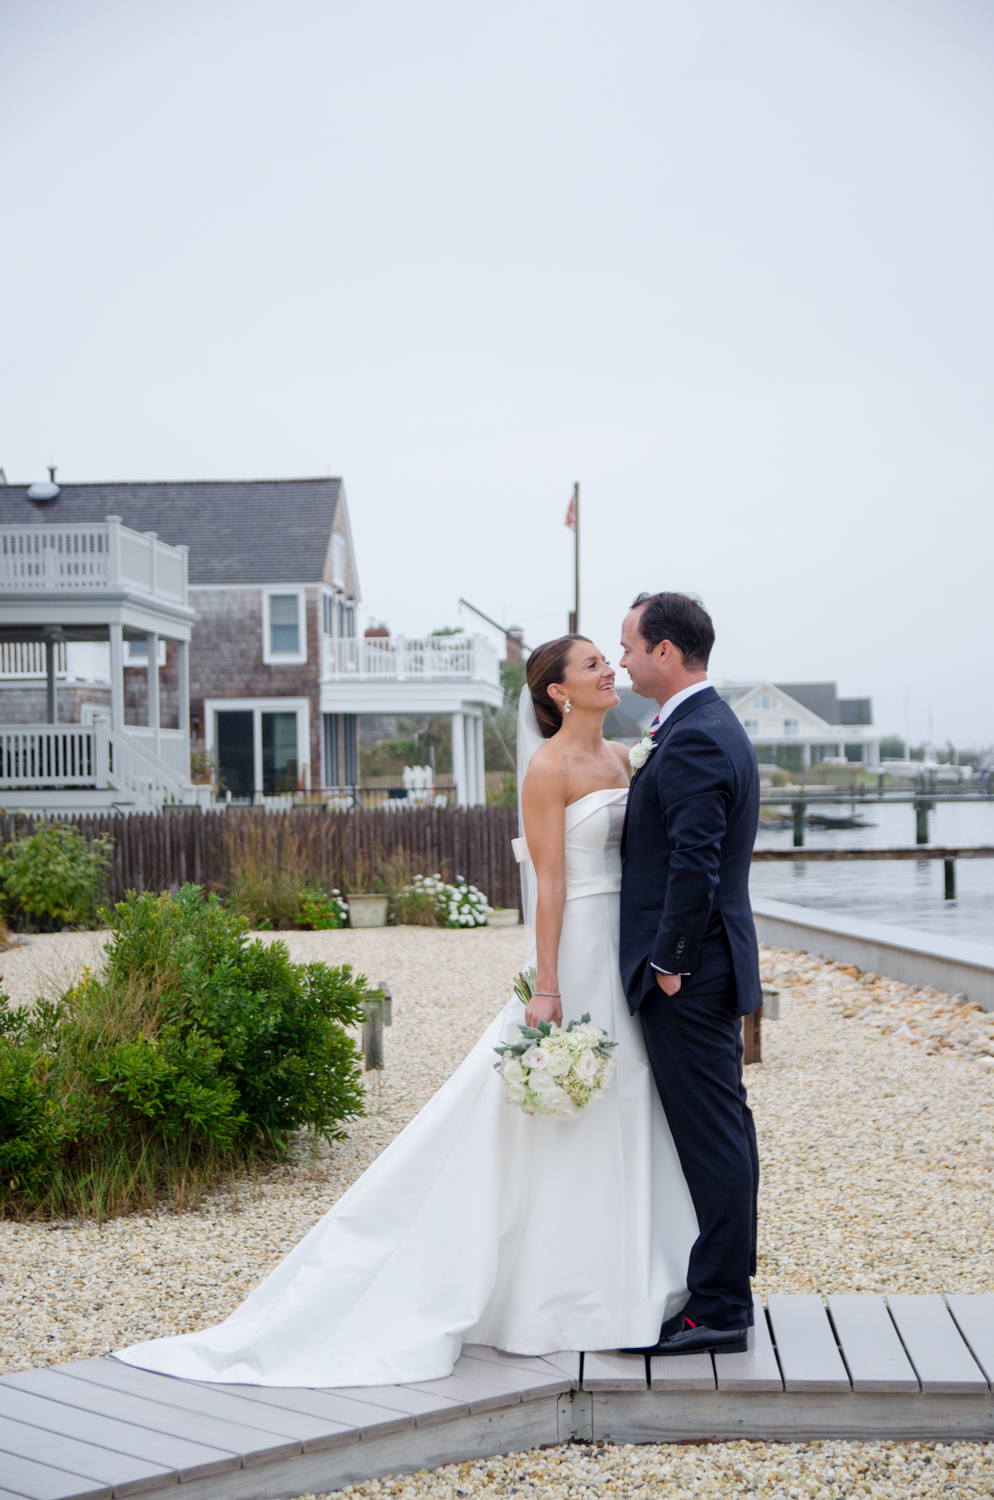 Maggie+Bobby- Mantoloking Yacht Club Wedding- New Jersey-Olivia Christina Photo 2014-256.JPG